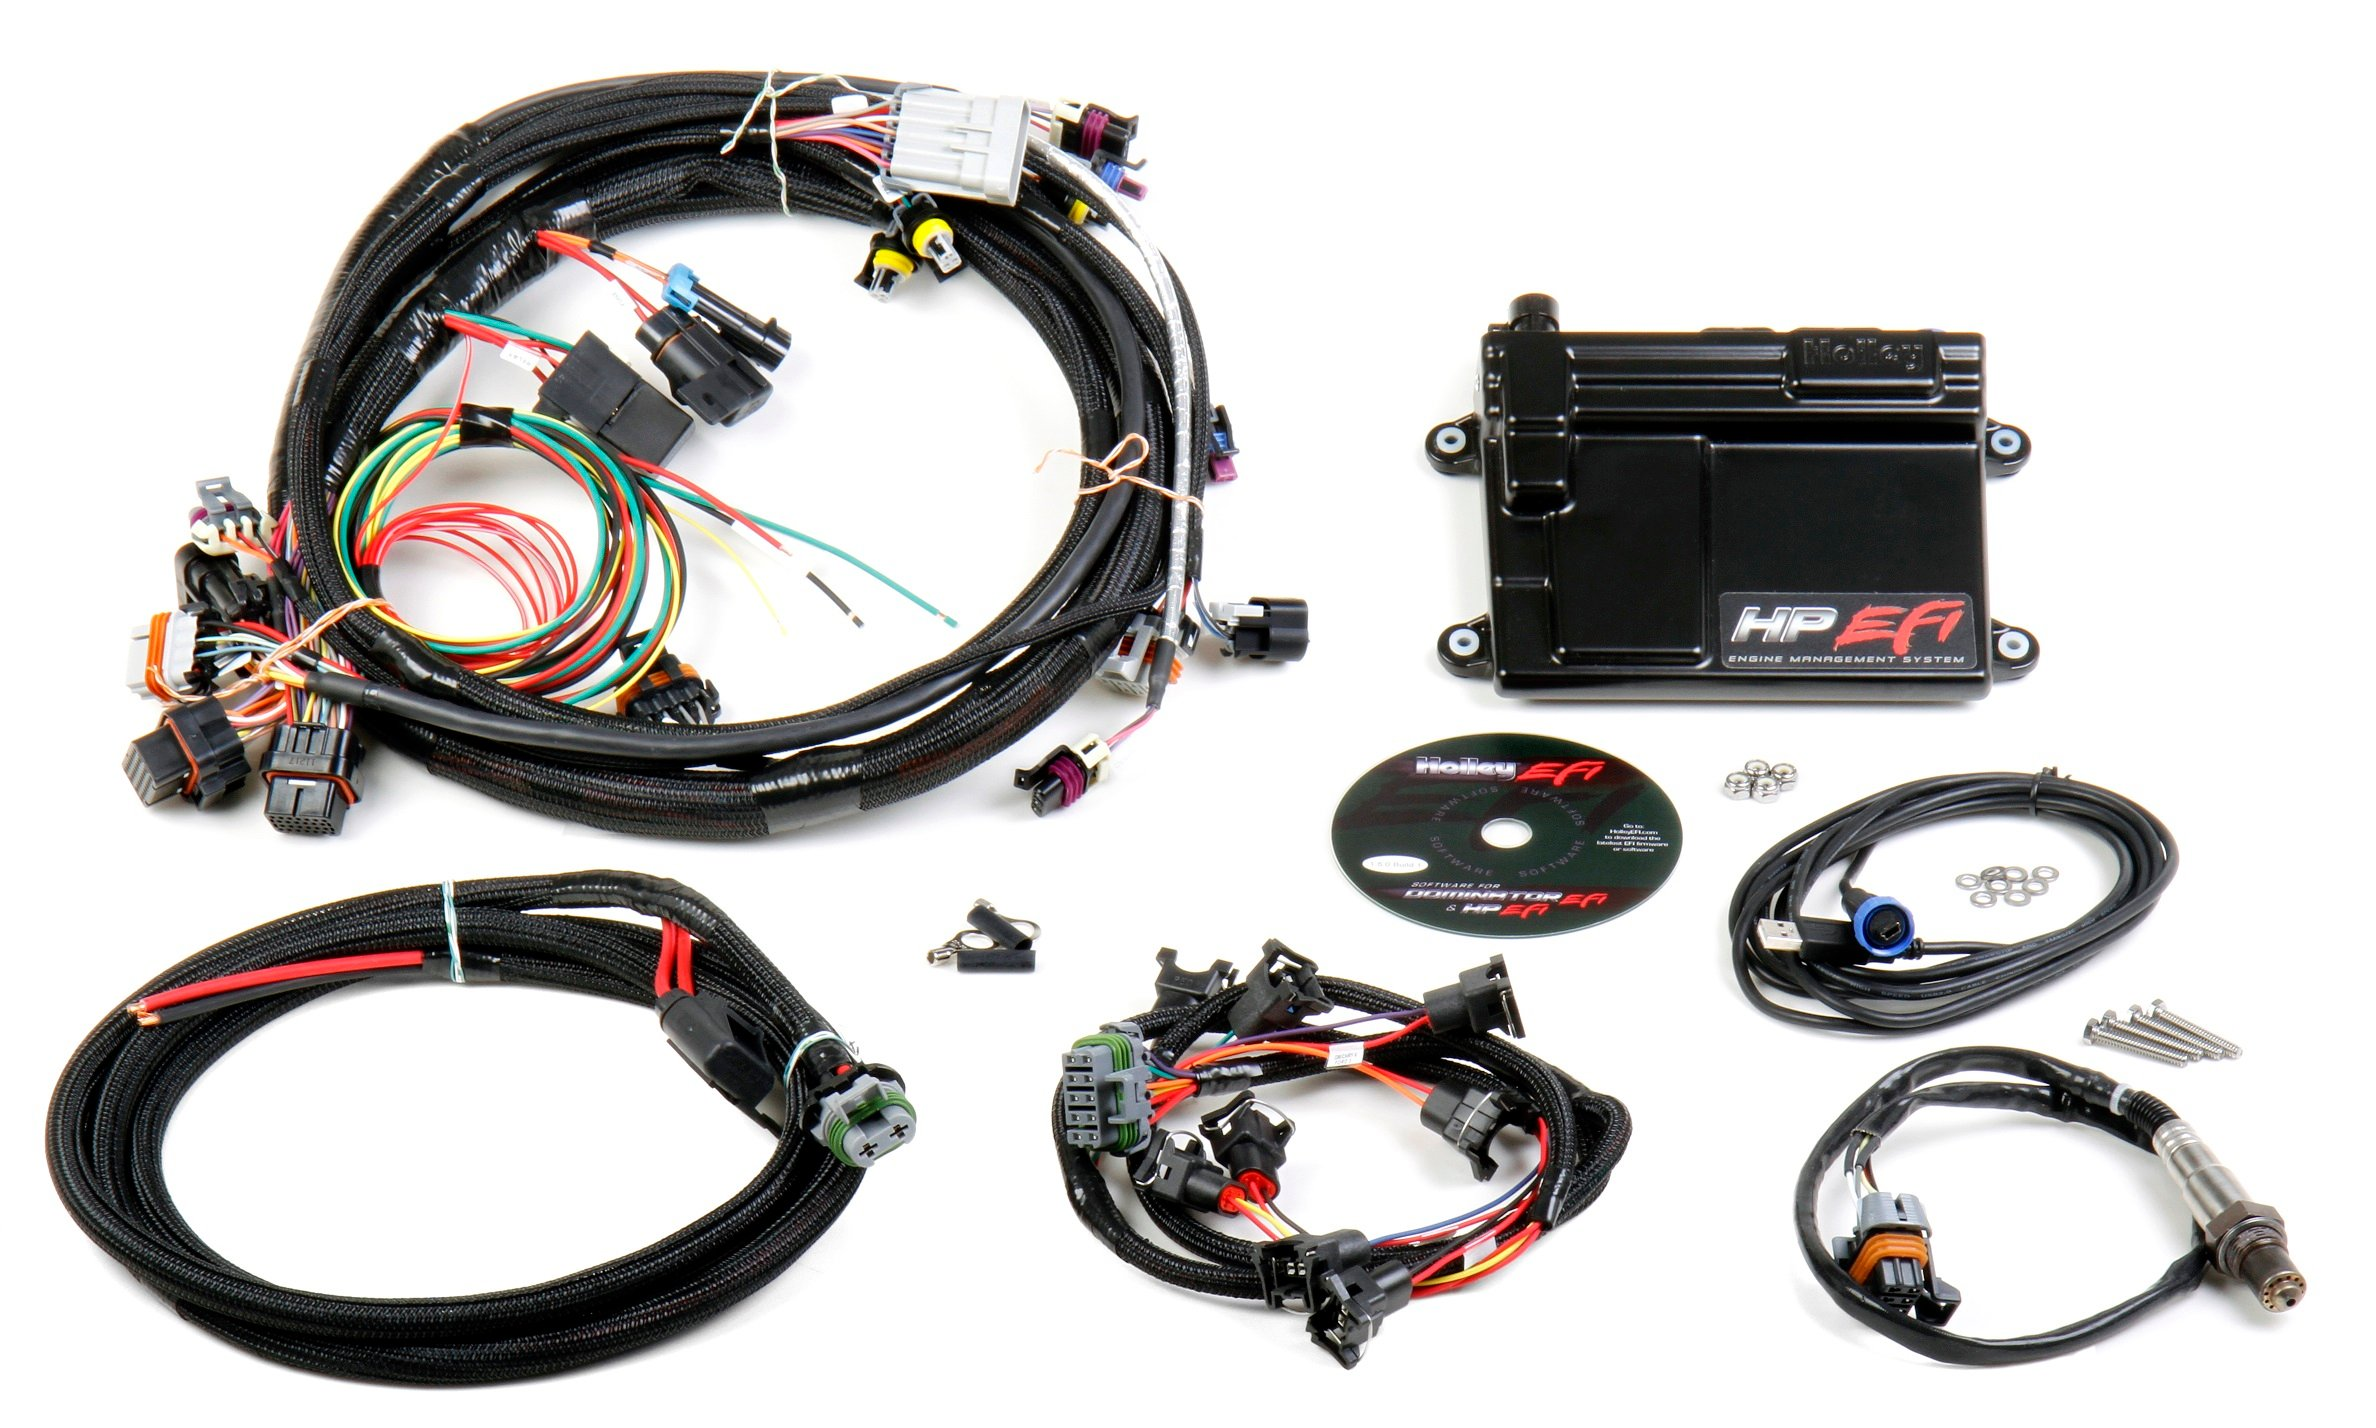 550 602 holley efi 550 602 hp efi ecu & harness kits Wiring Diagrams for Chevy LS Engines at gsmportal.co